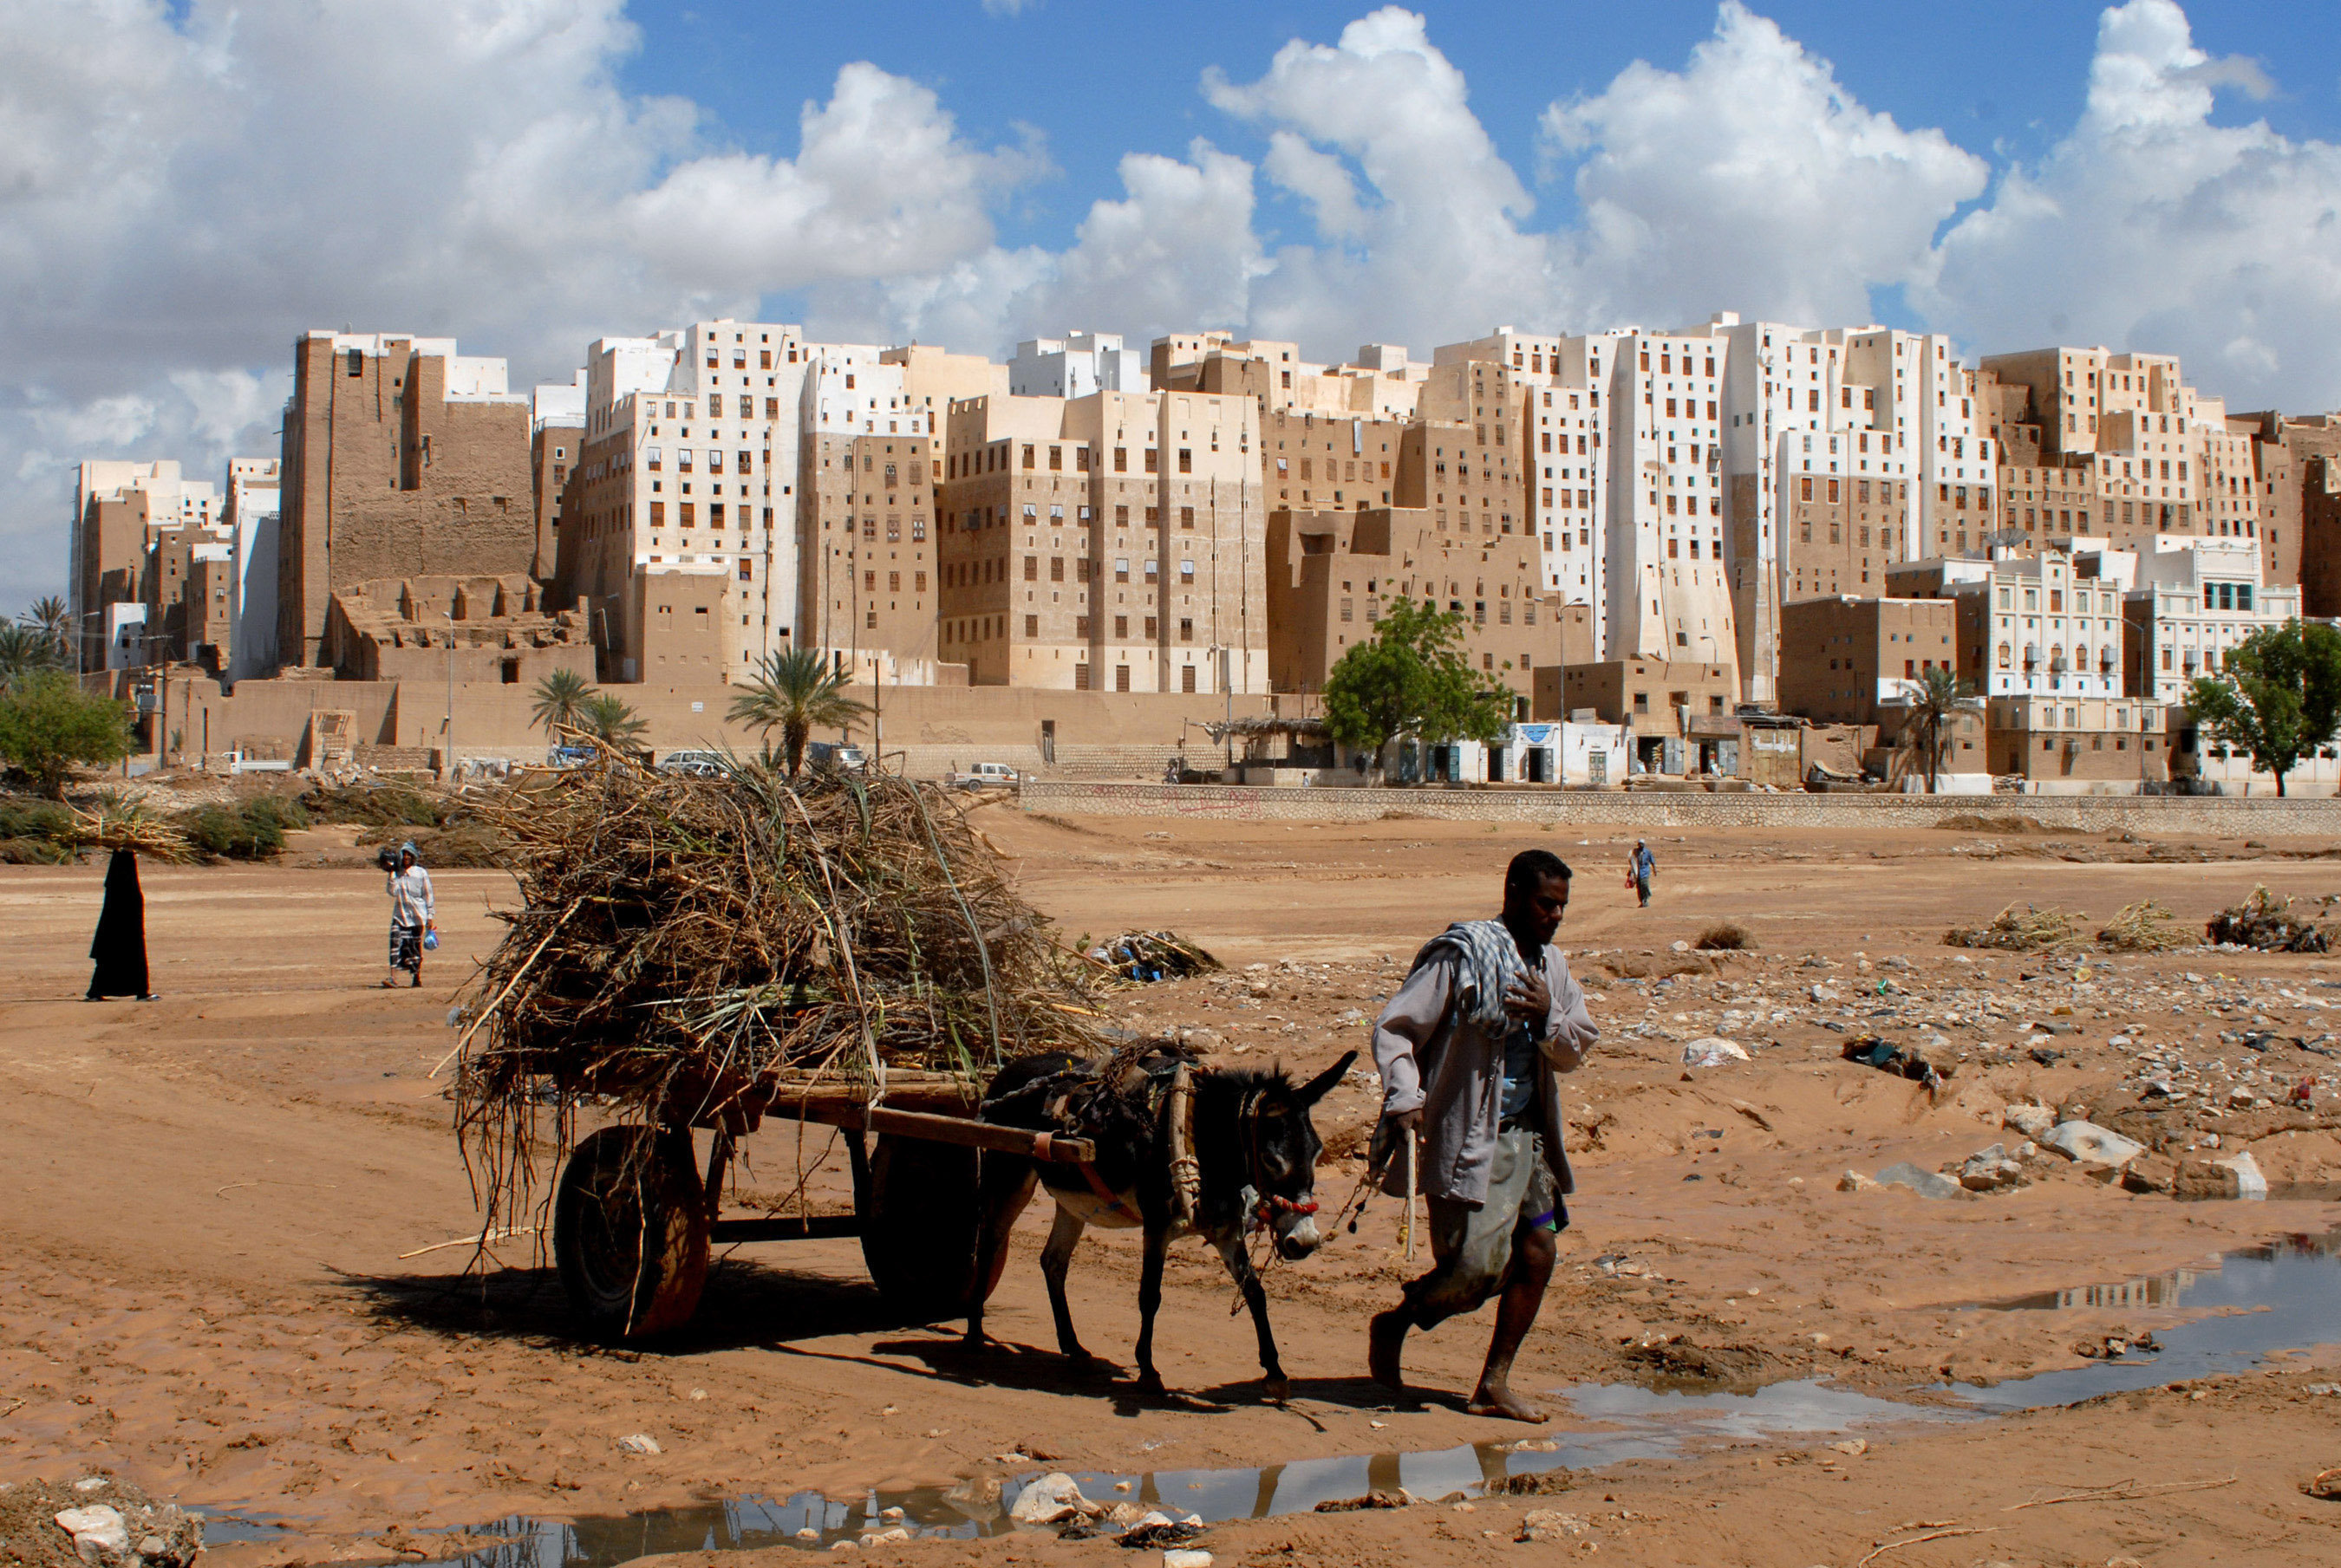 A Yemeni man pulls his donkey cart past the historical city of Shibam in Hadramaut province of eastern Yemen on October 28, 2008